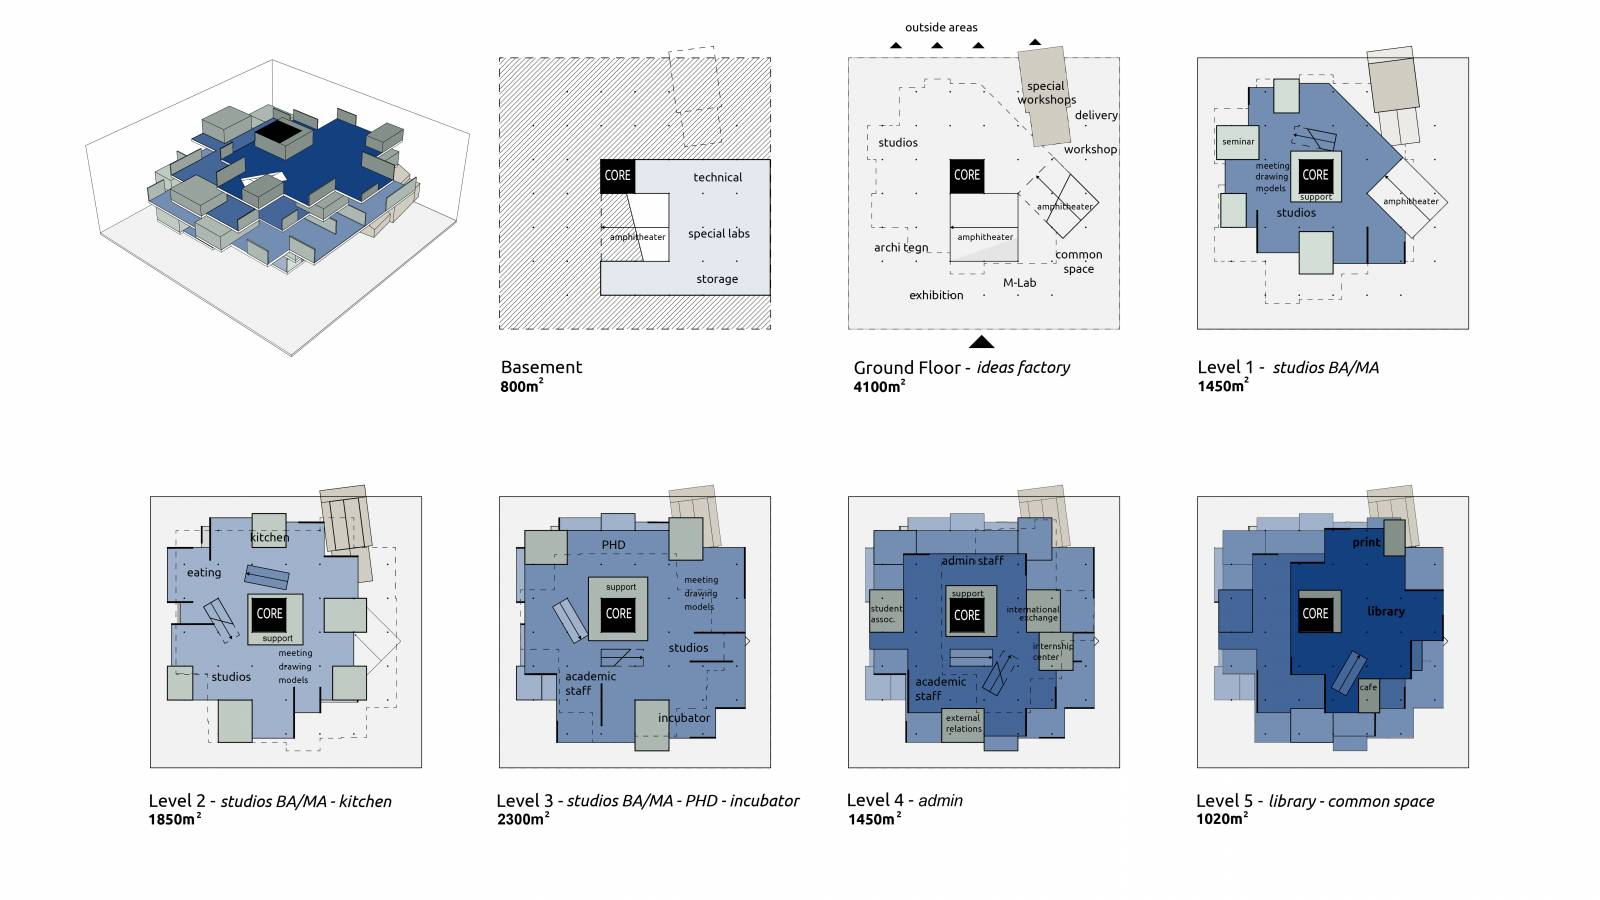 PLANS DIAGRAMS - NEW AARCH – CREATIVE CLOUD - SPOL Architects